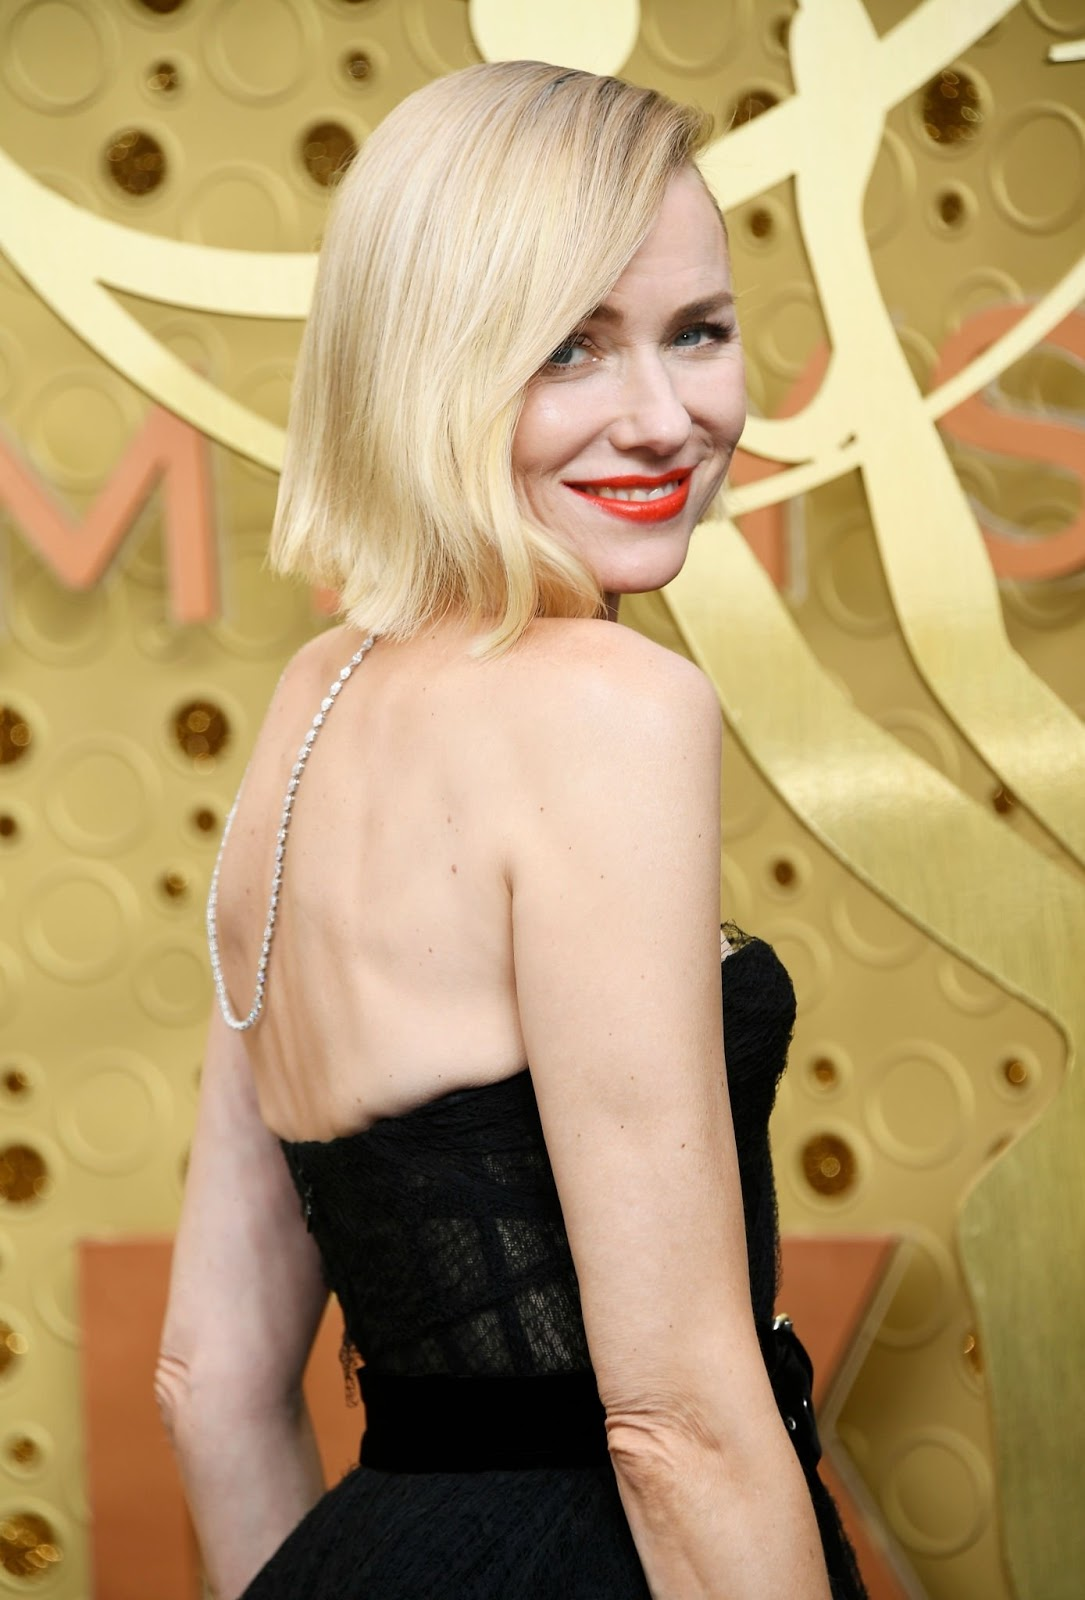 Naomi Watts's Asymmetrical Bob Haircut at the Emmys Deserves Its Own Award